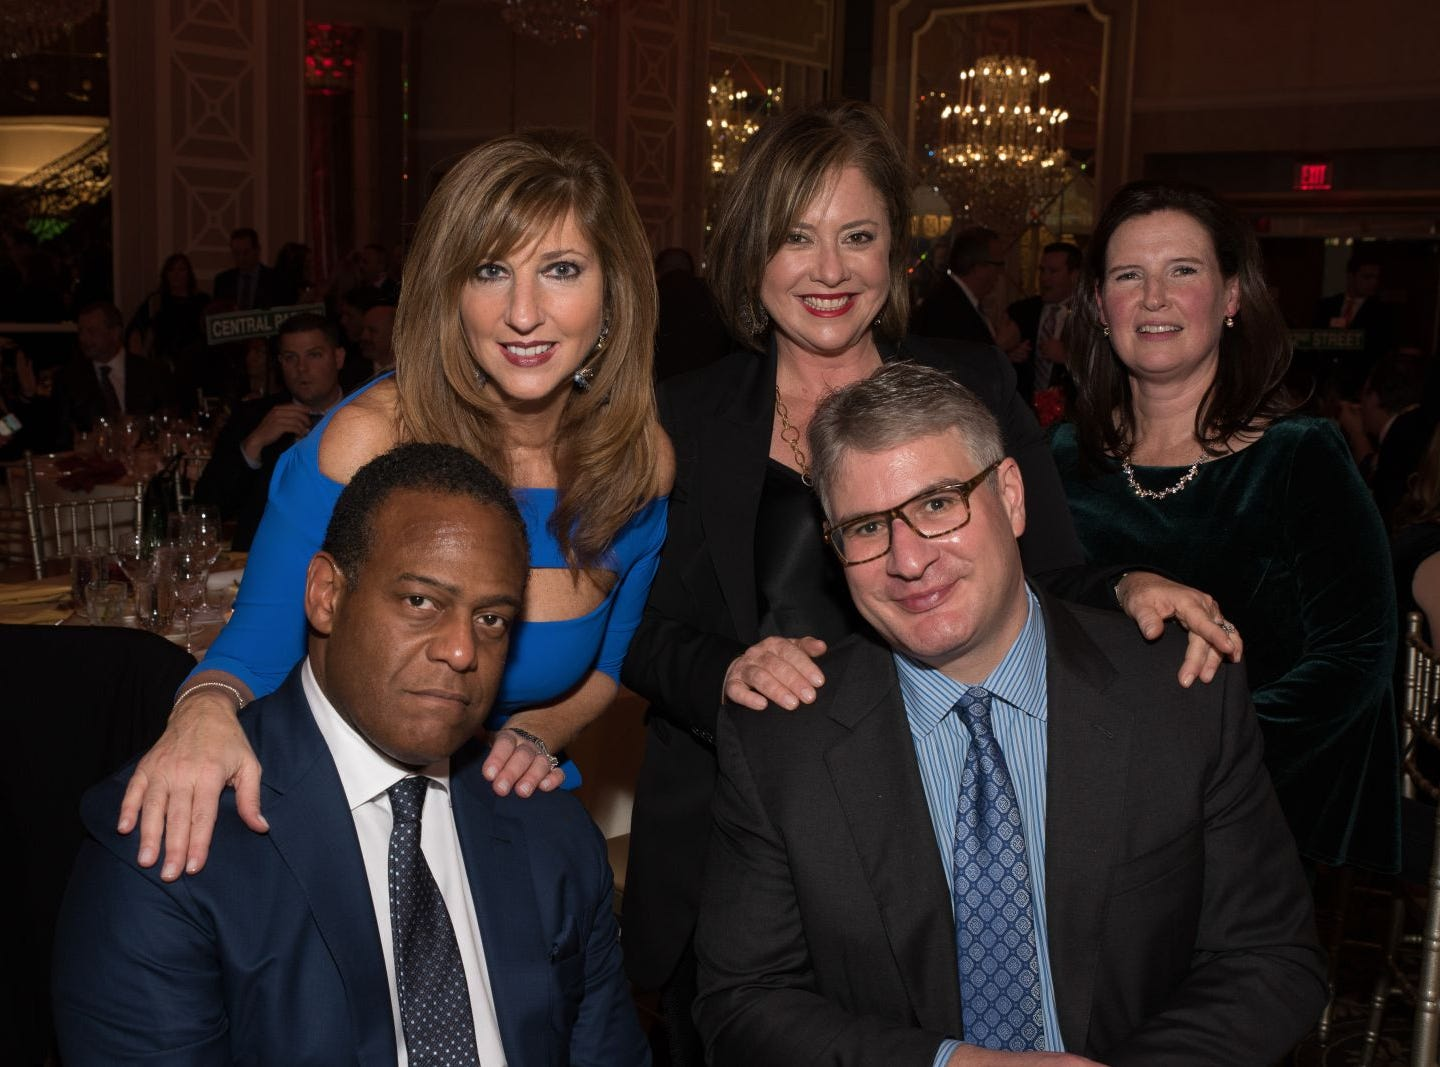 Greg and Debbie Regis, Monica and Stephen Borg and Eille Kennedy. Bergen Catholic High School celebrates their 2018 Crusader Gala at The Venetian in Garfield. 11/16/2018